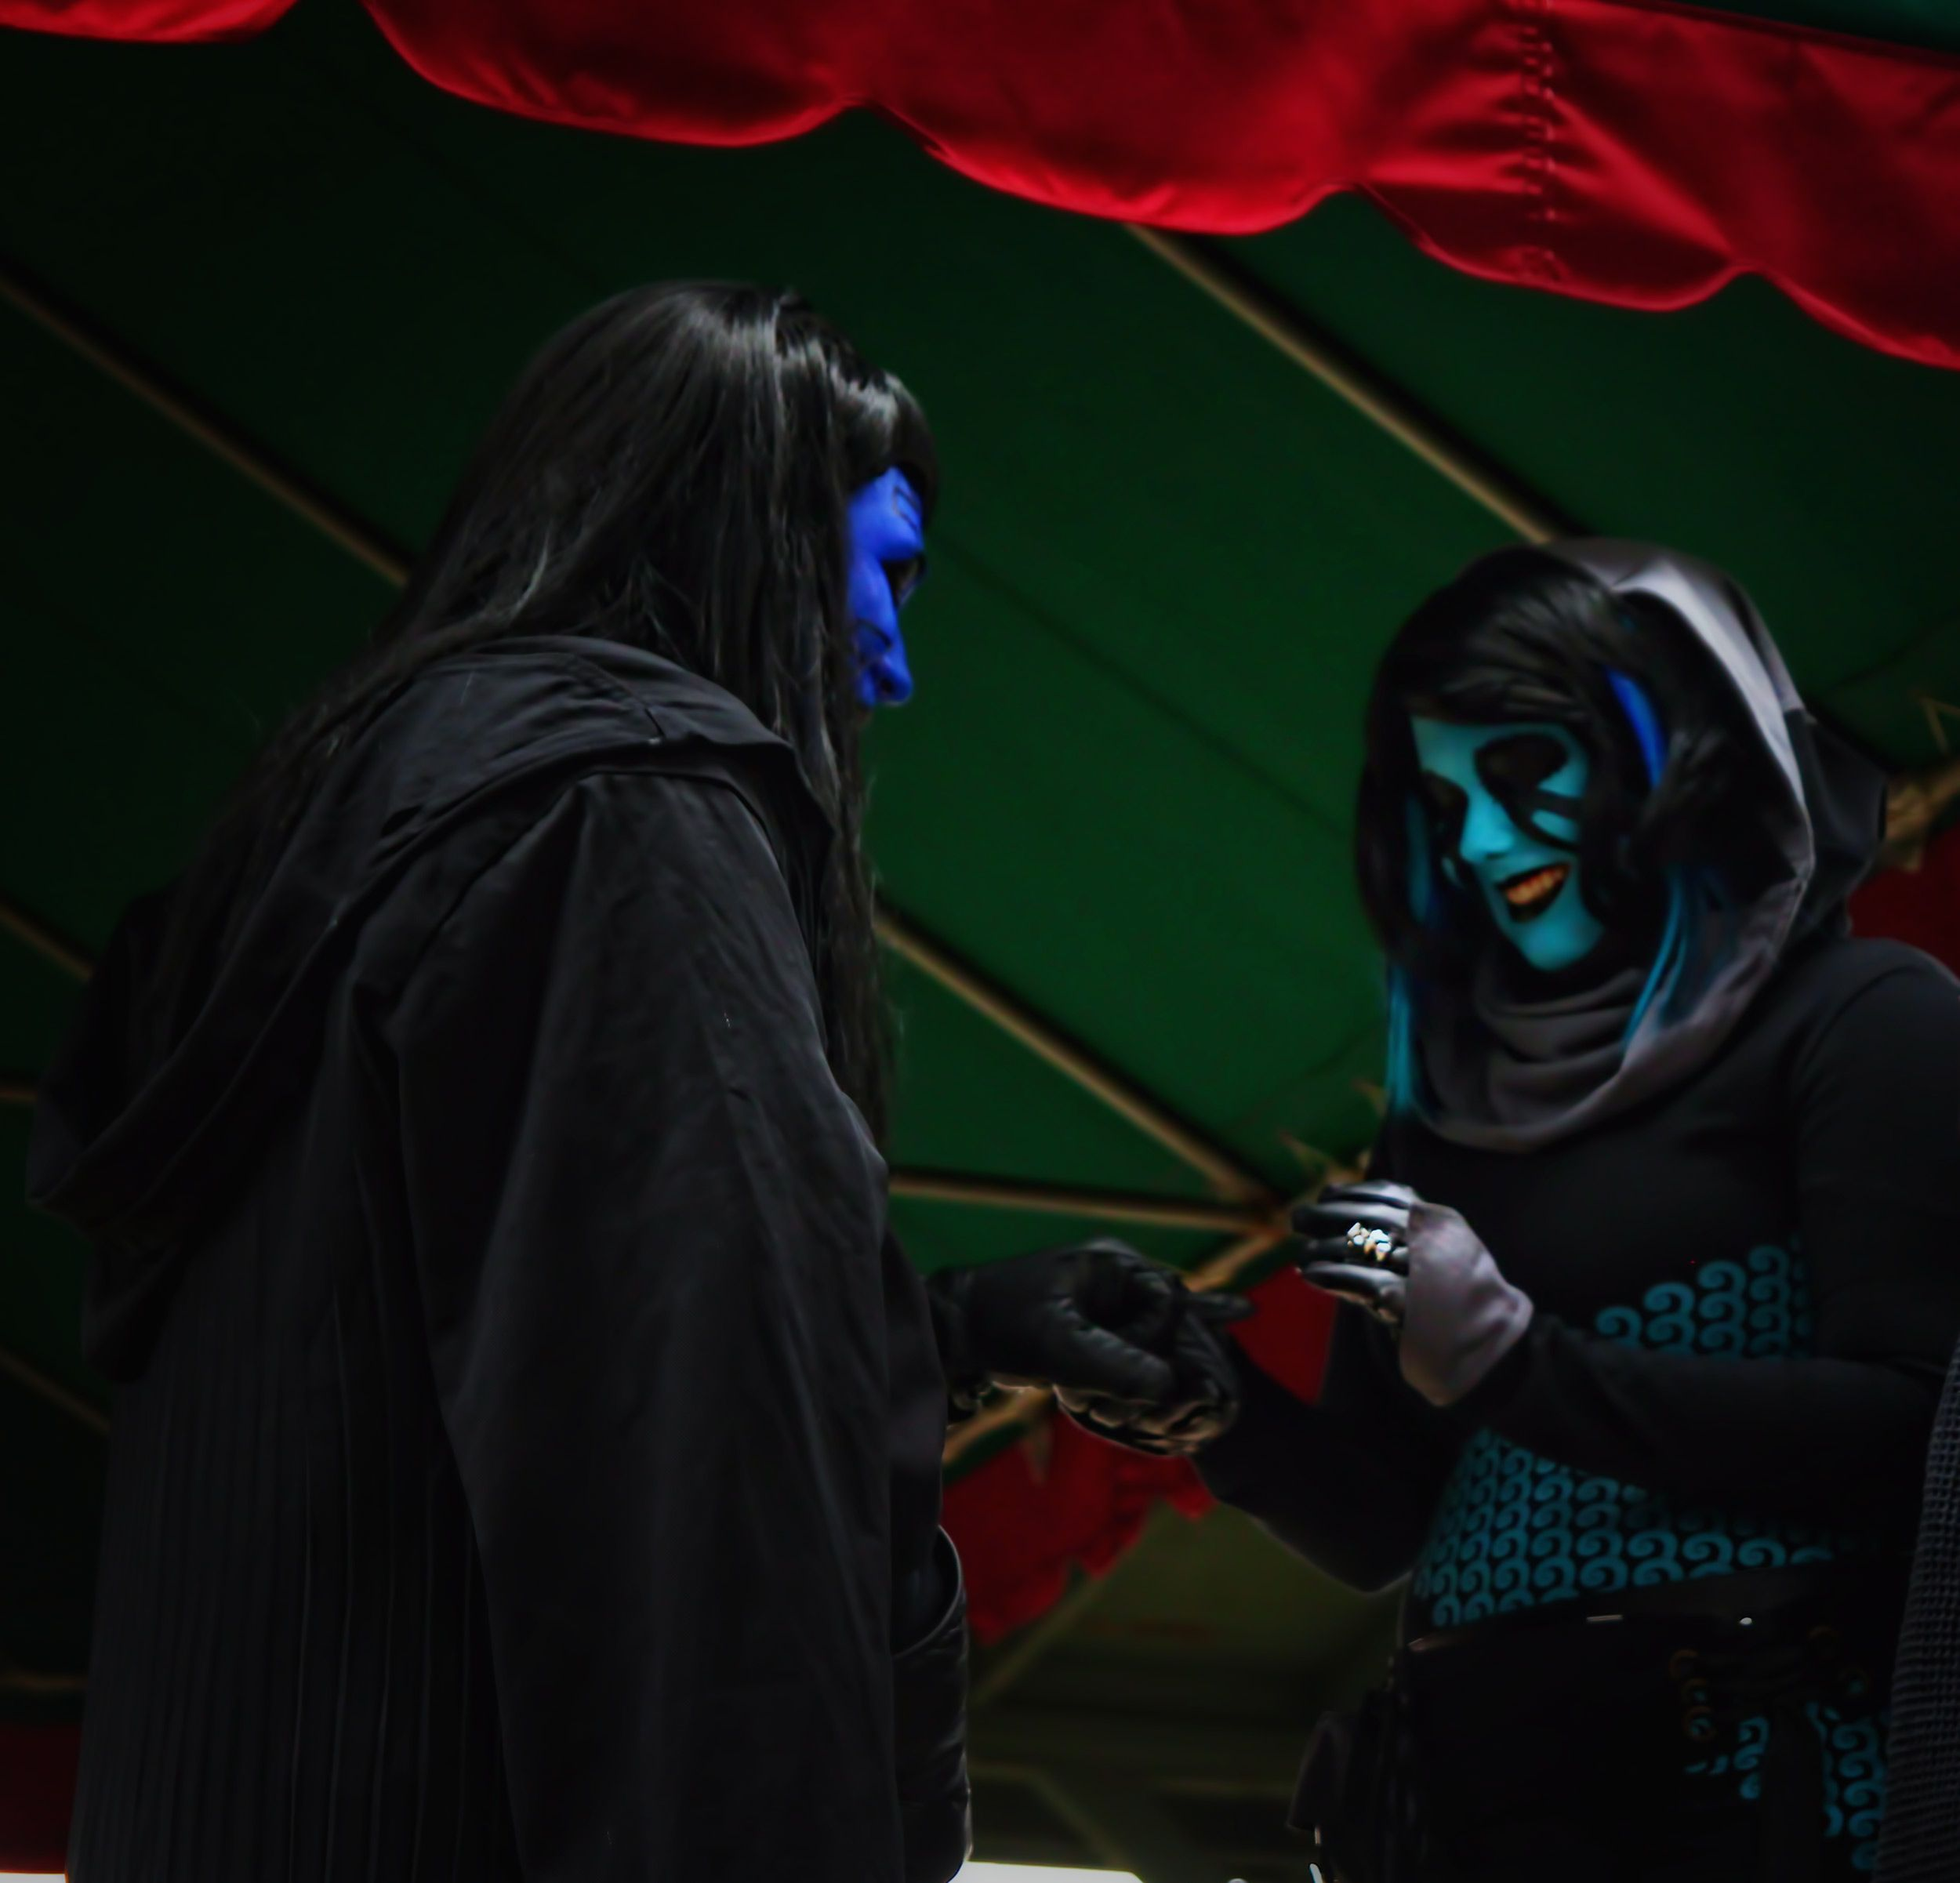 Star Wars Sith Wedding by Picturesque Photography. www.picturesquepixs.com